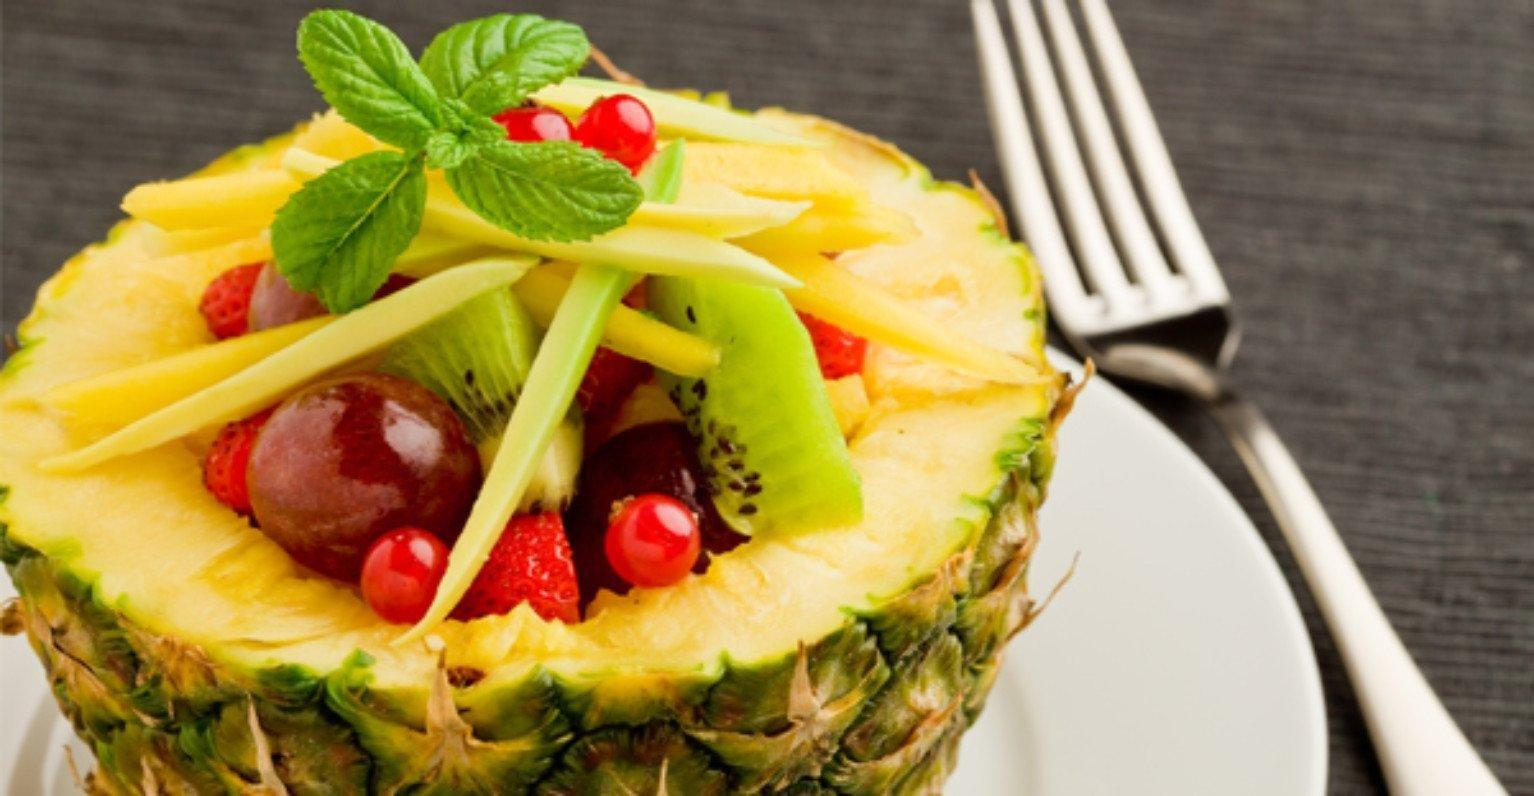 Type Ii Diabetes: 6 Fruits To Help Control Your Blood Sugar